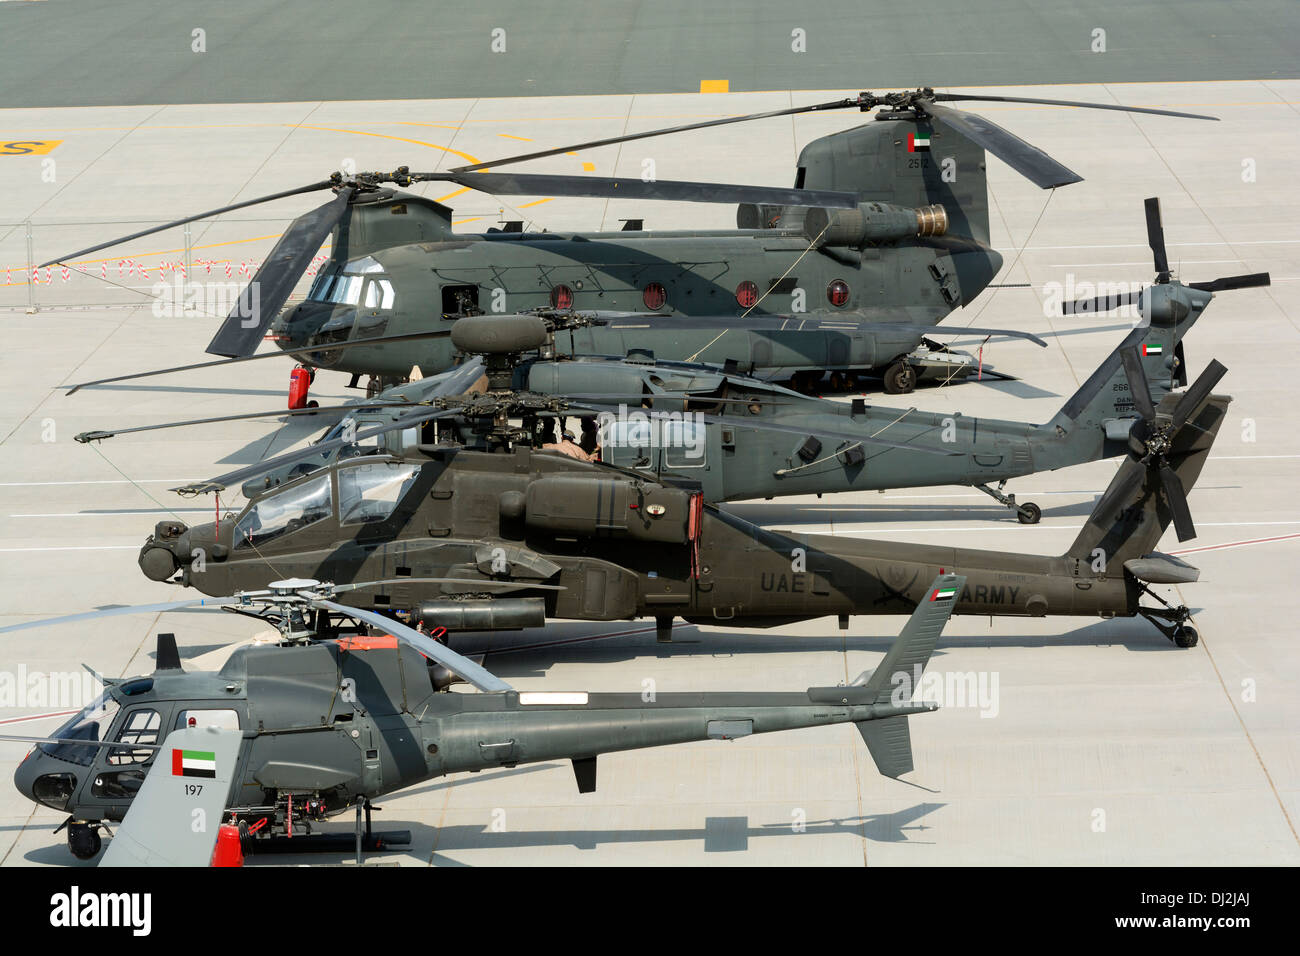 Military helicopters on apron at Al Maktoum International airport during Dubai Airshow 2013 in United Arab Emirates Stock Photo